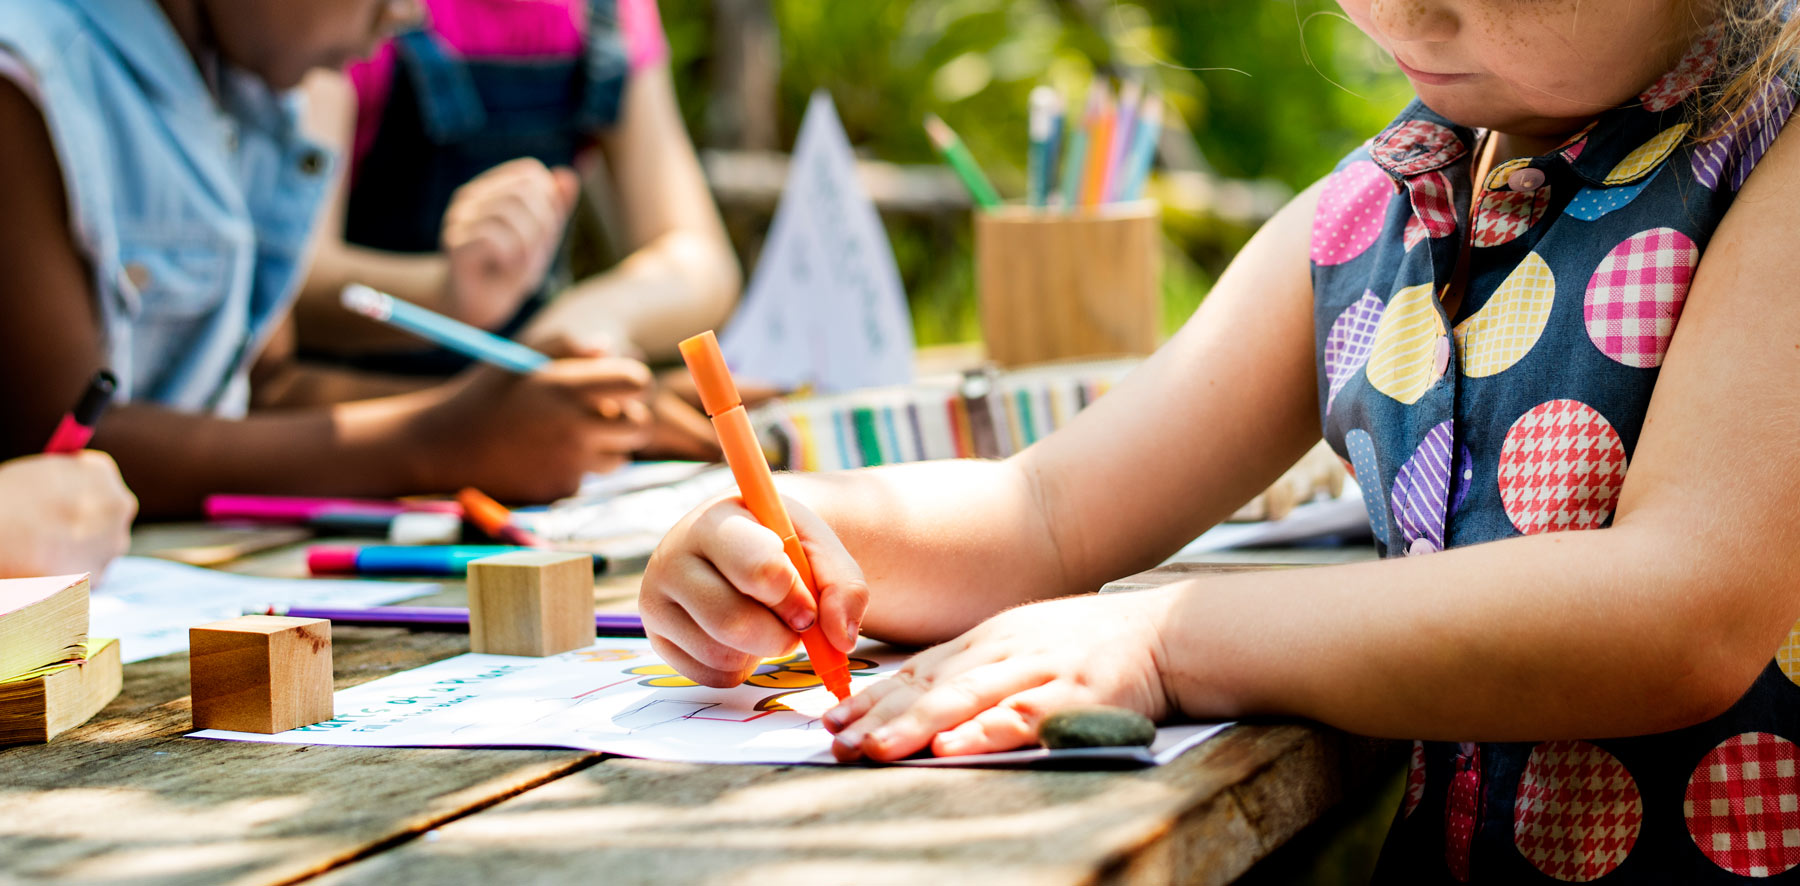 kids doing arts and crafts in the summer